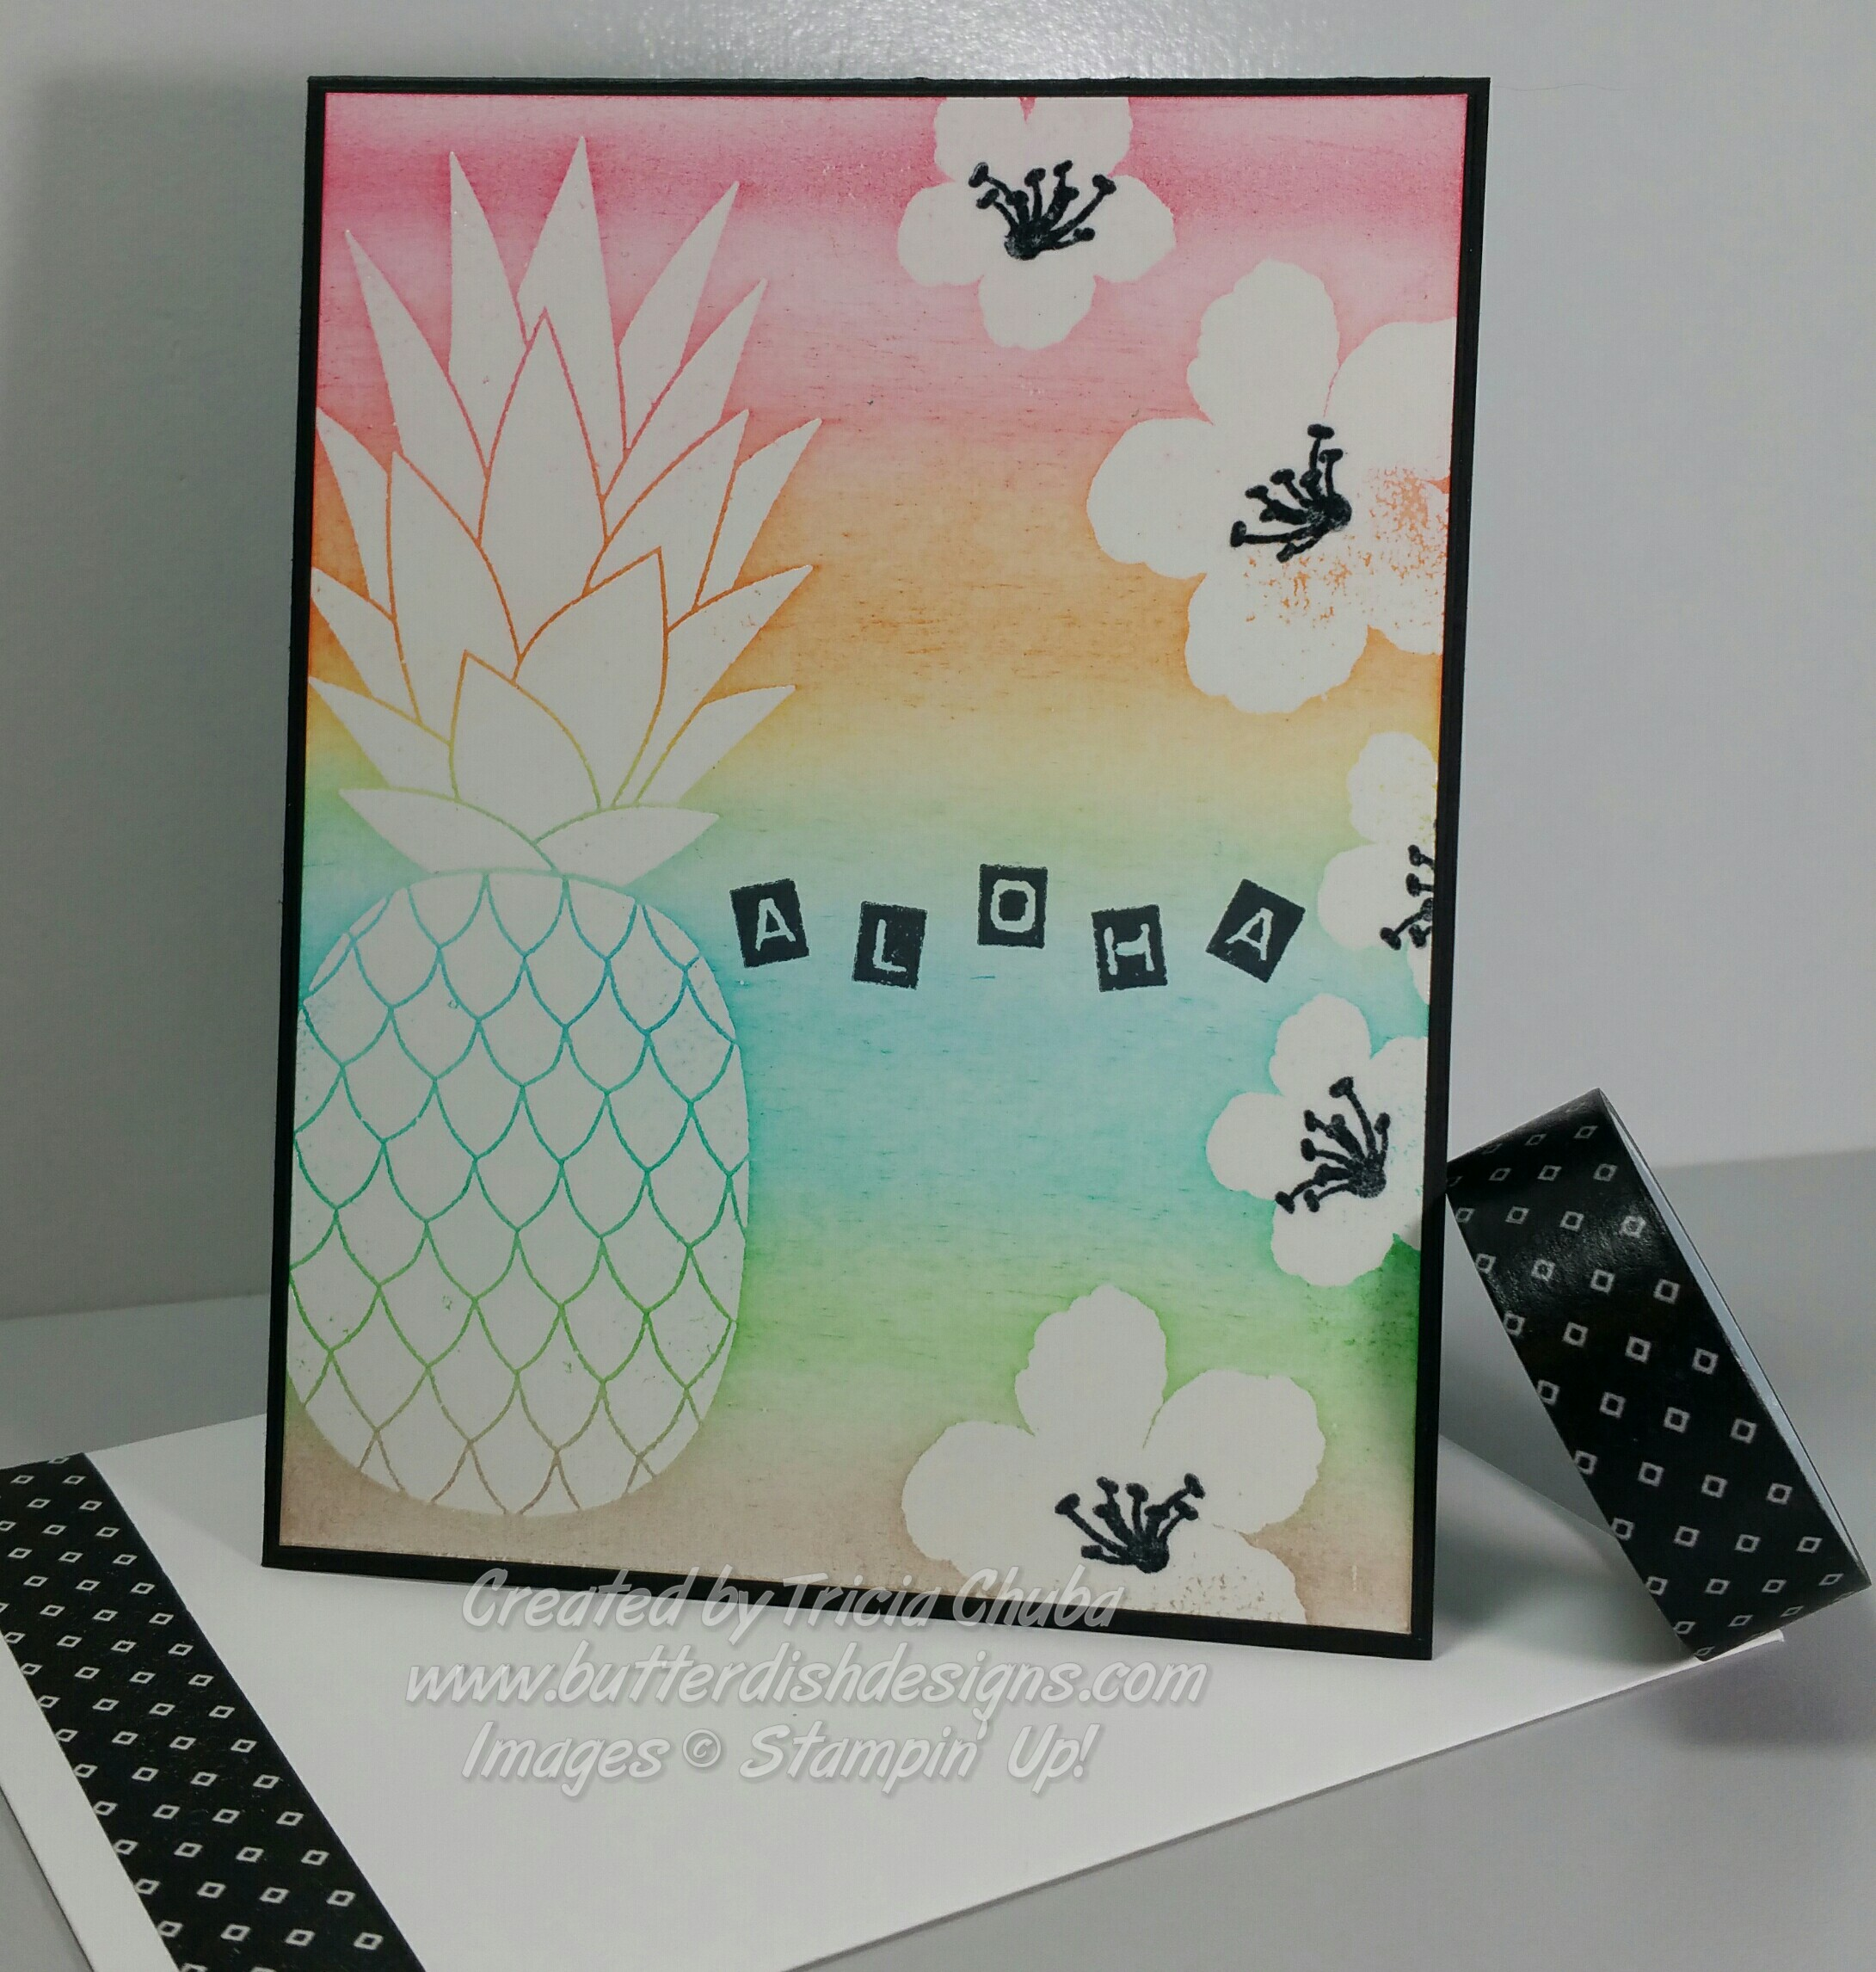 ButterDish Designs CADIM #8